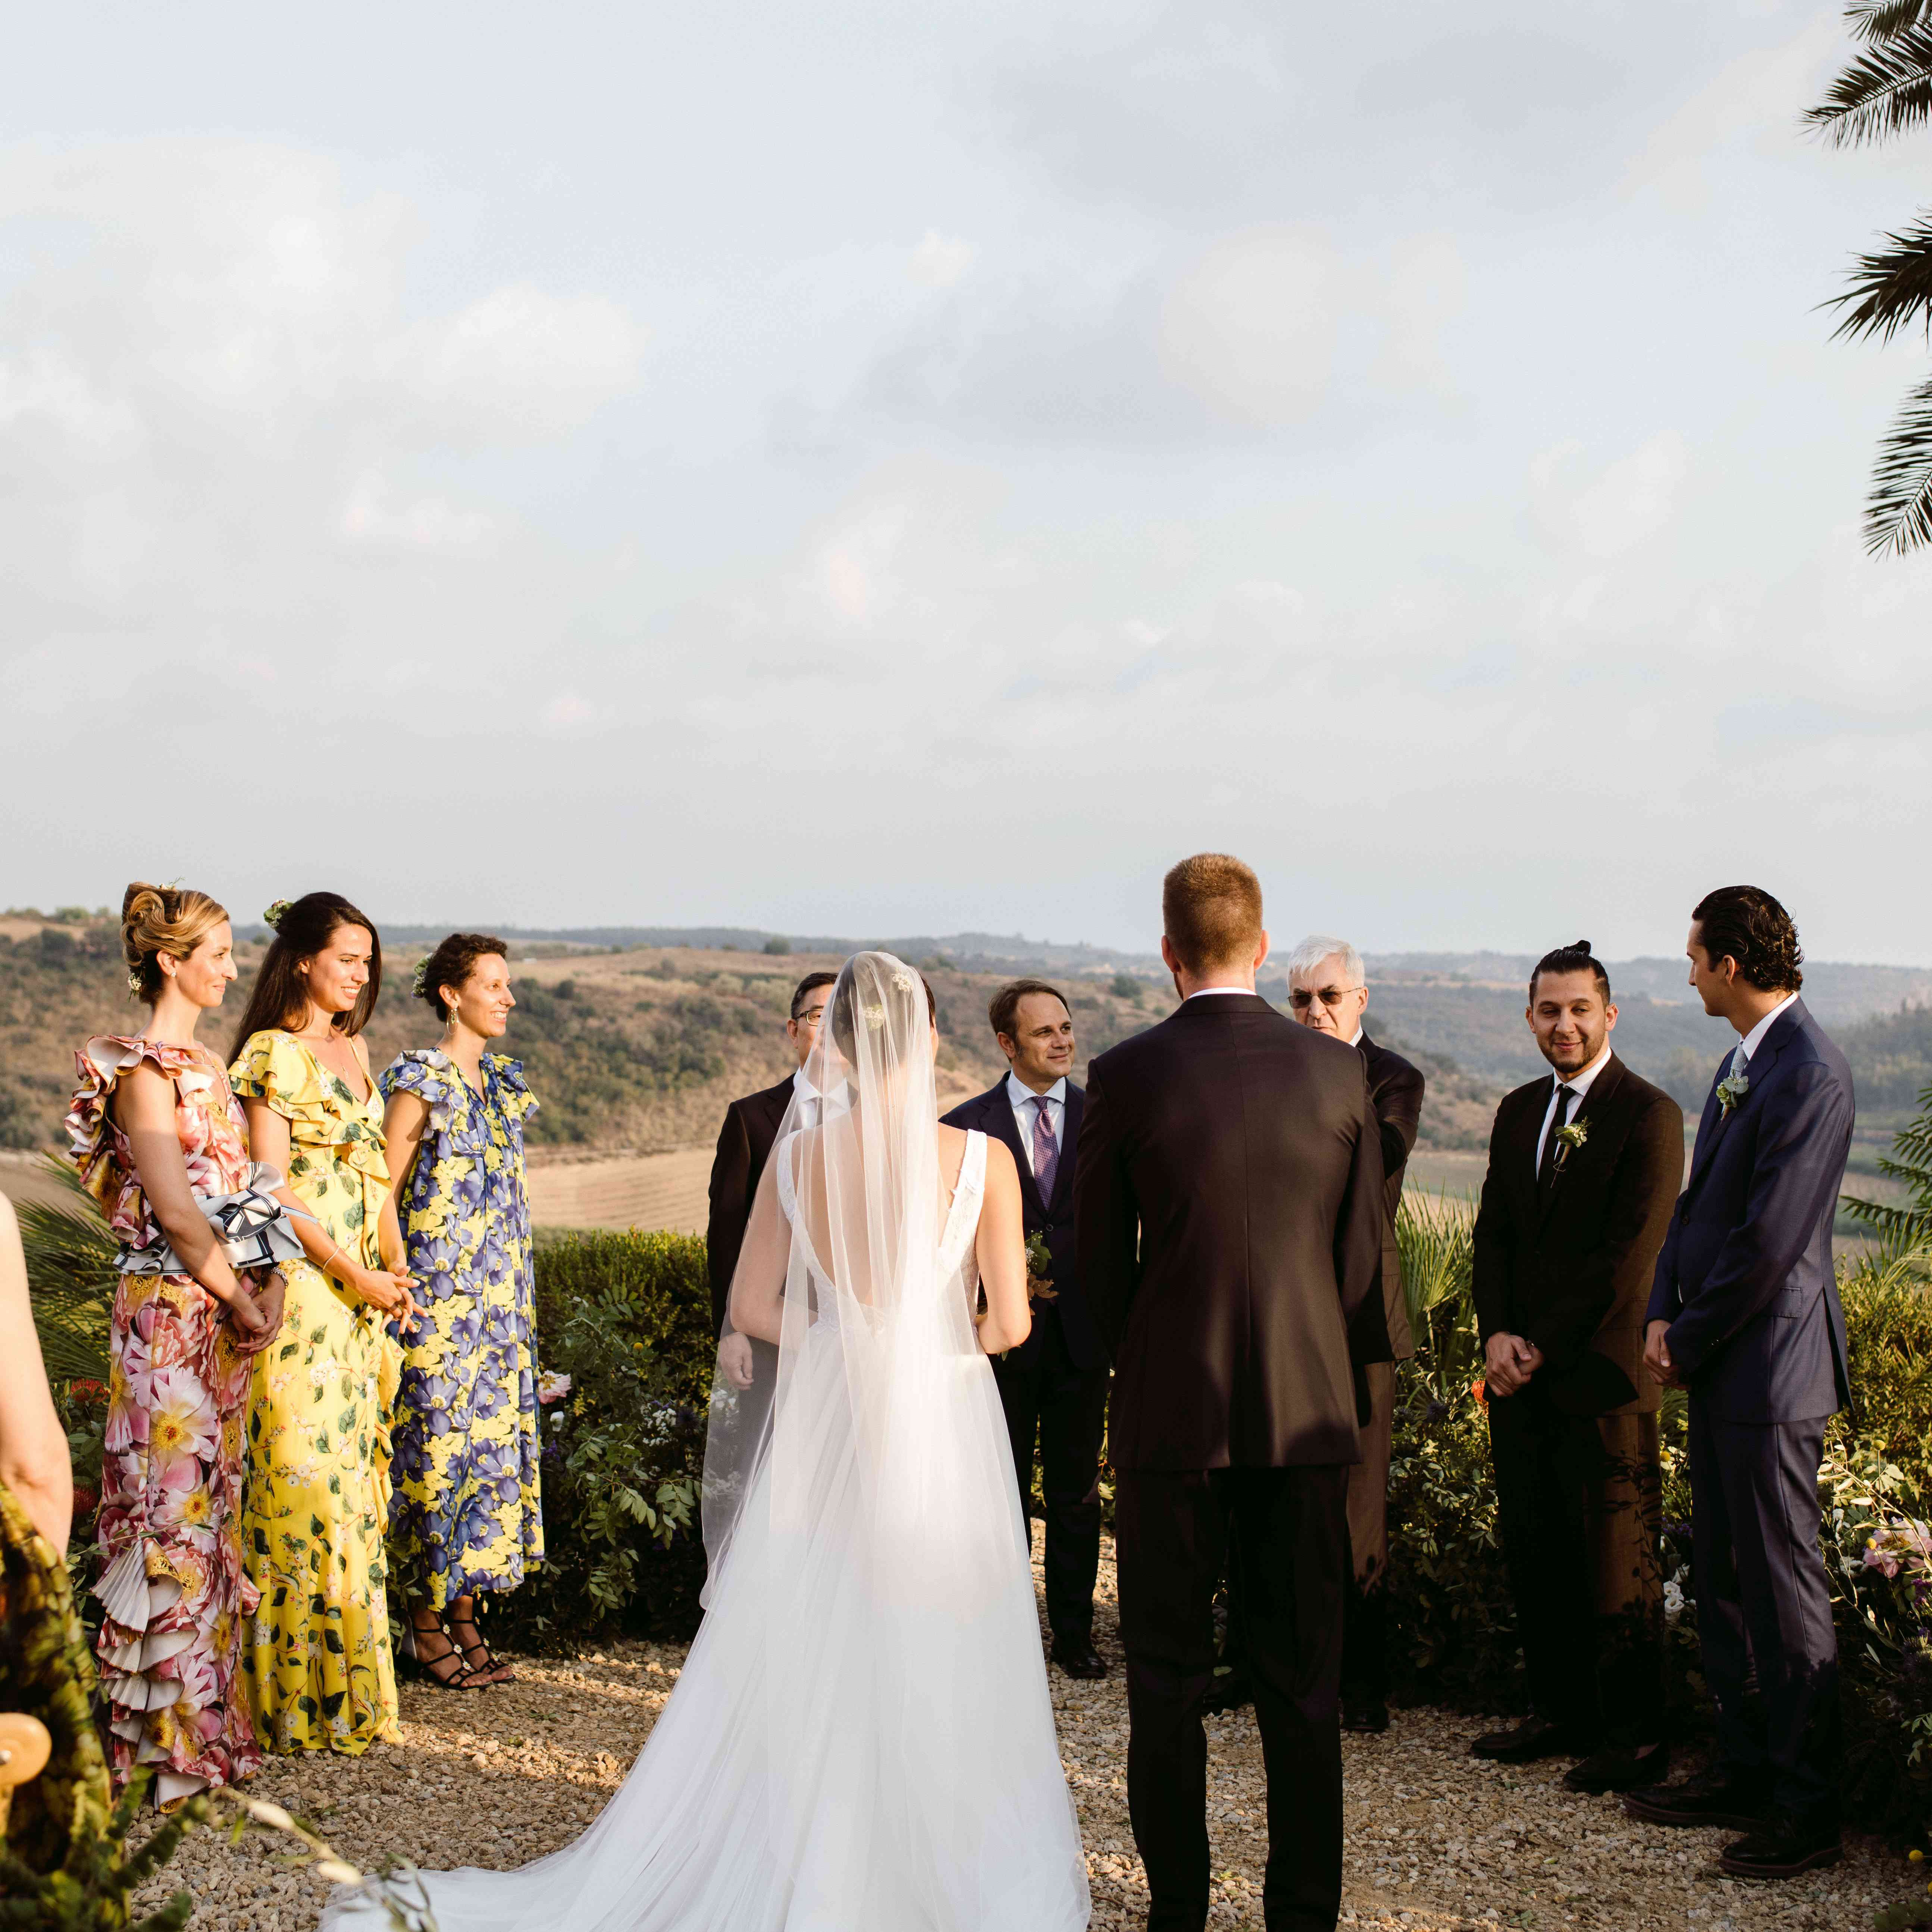 Bride and groom at the altar with bridesmaids and groomsmen